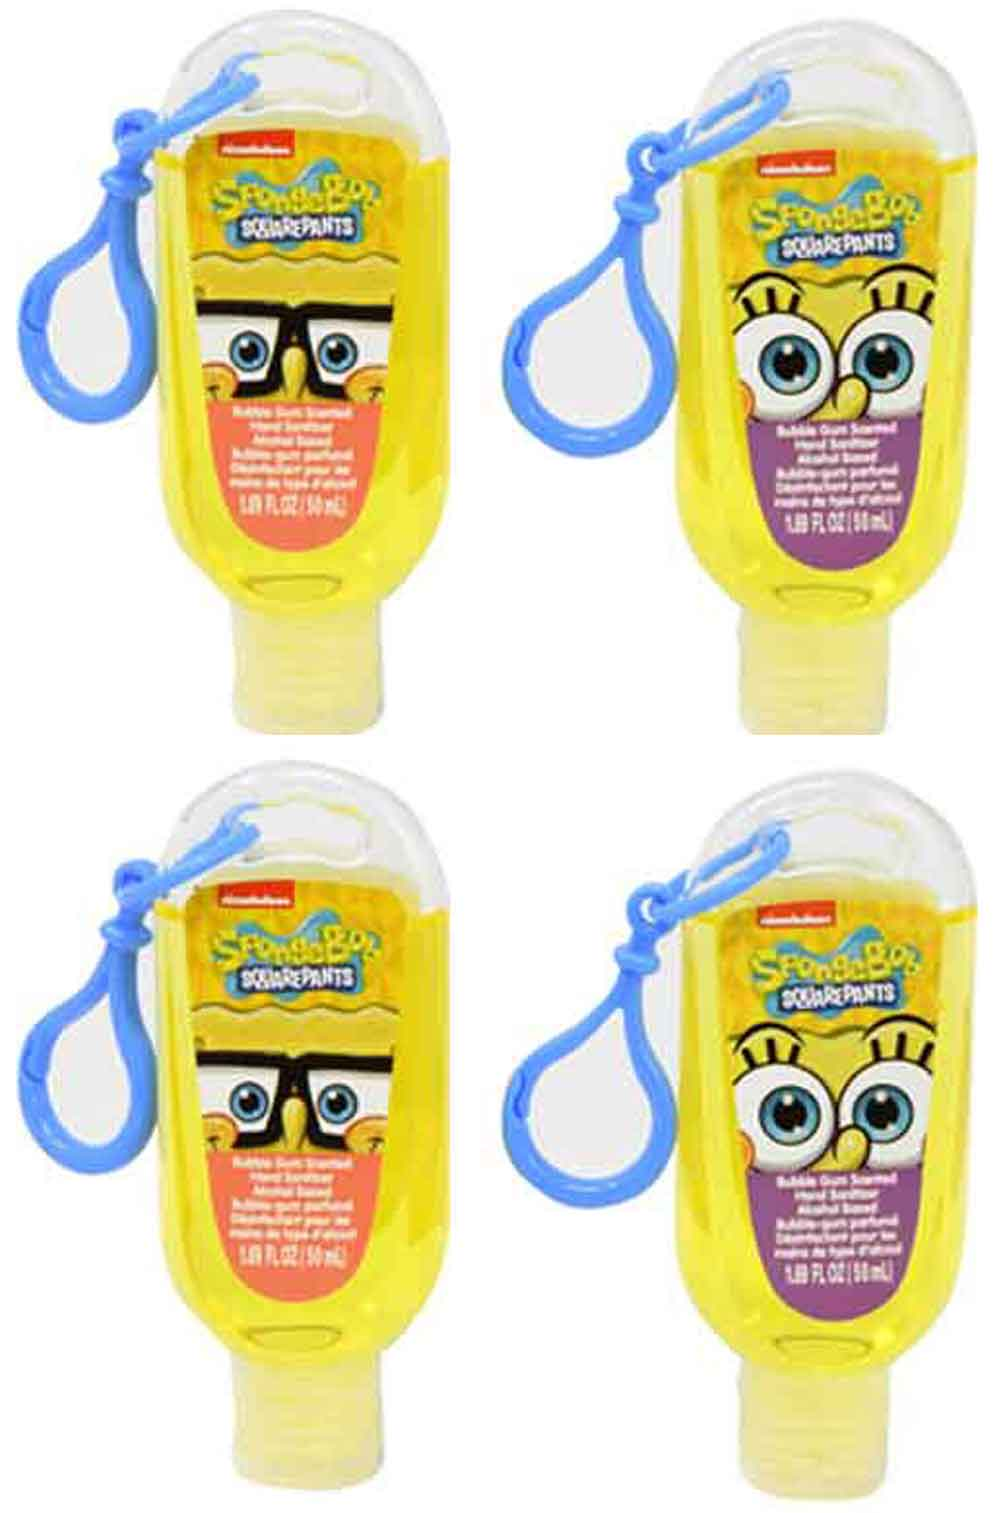 Bubble Gum Scented antibacterial Hand Sanitizer - SpongeBob SquarePants set of 4